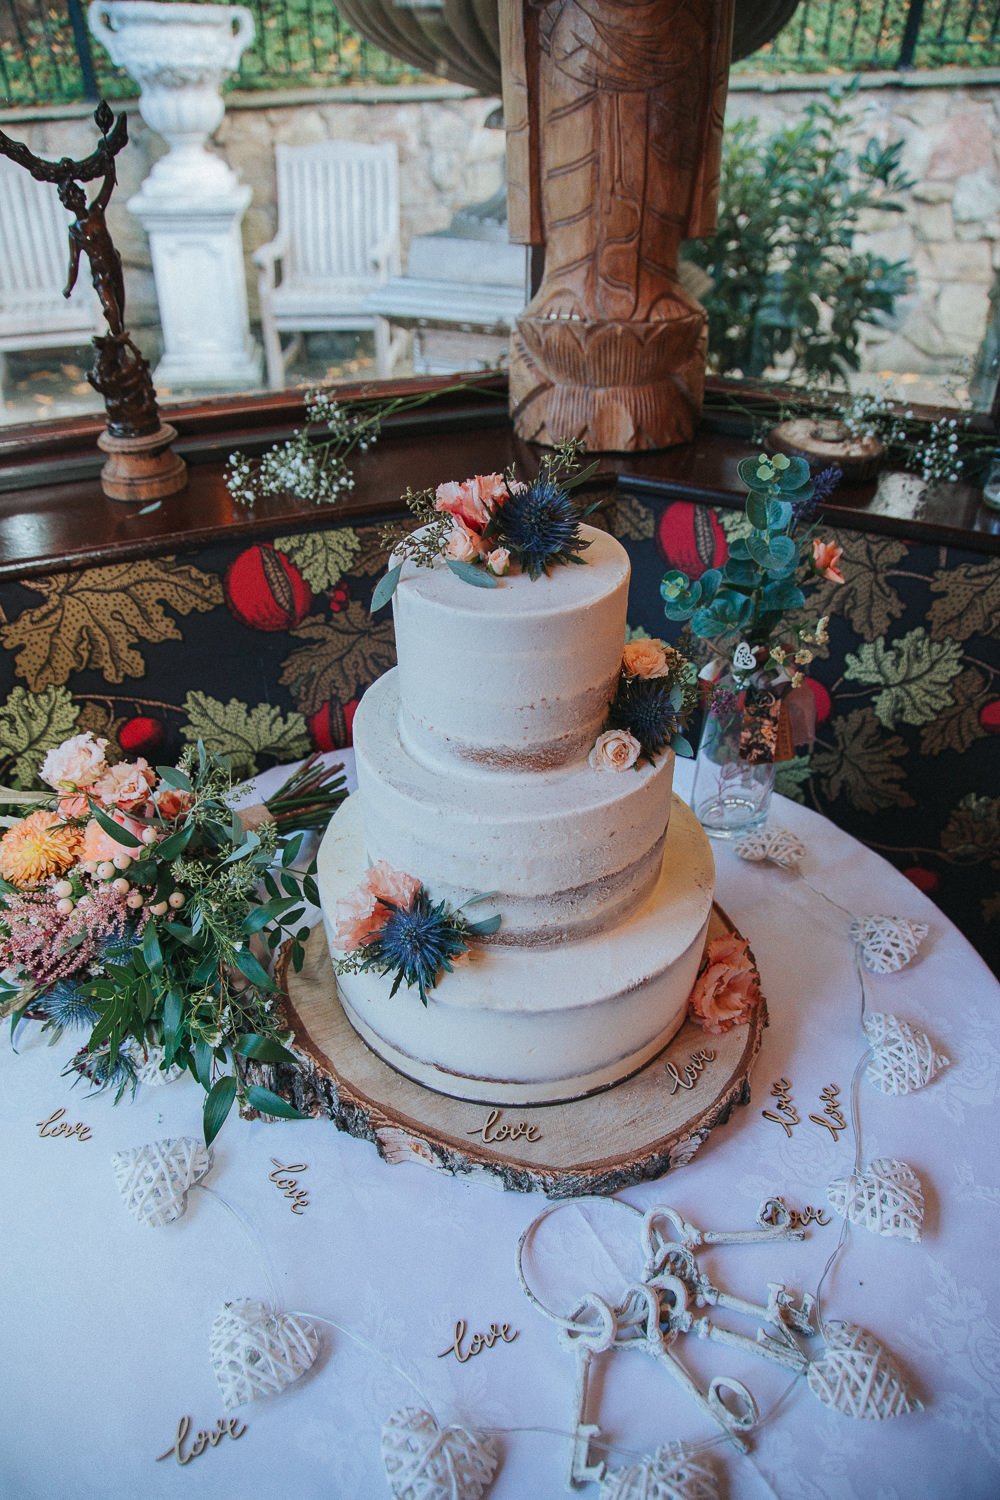 Cake Flowers Buttercream Semi Naked Log Stand Crab Lobster Wedding A Little Picture